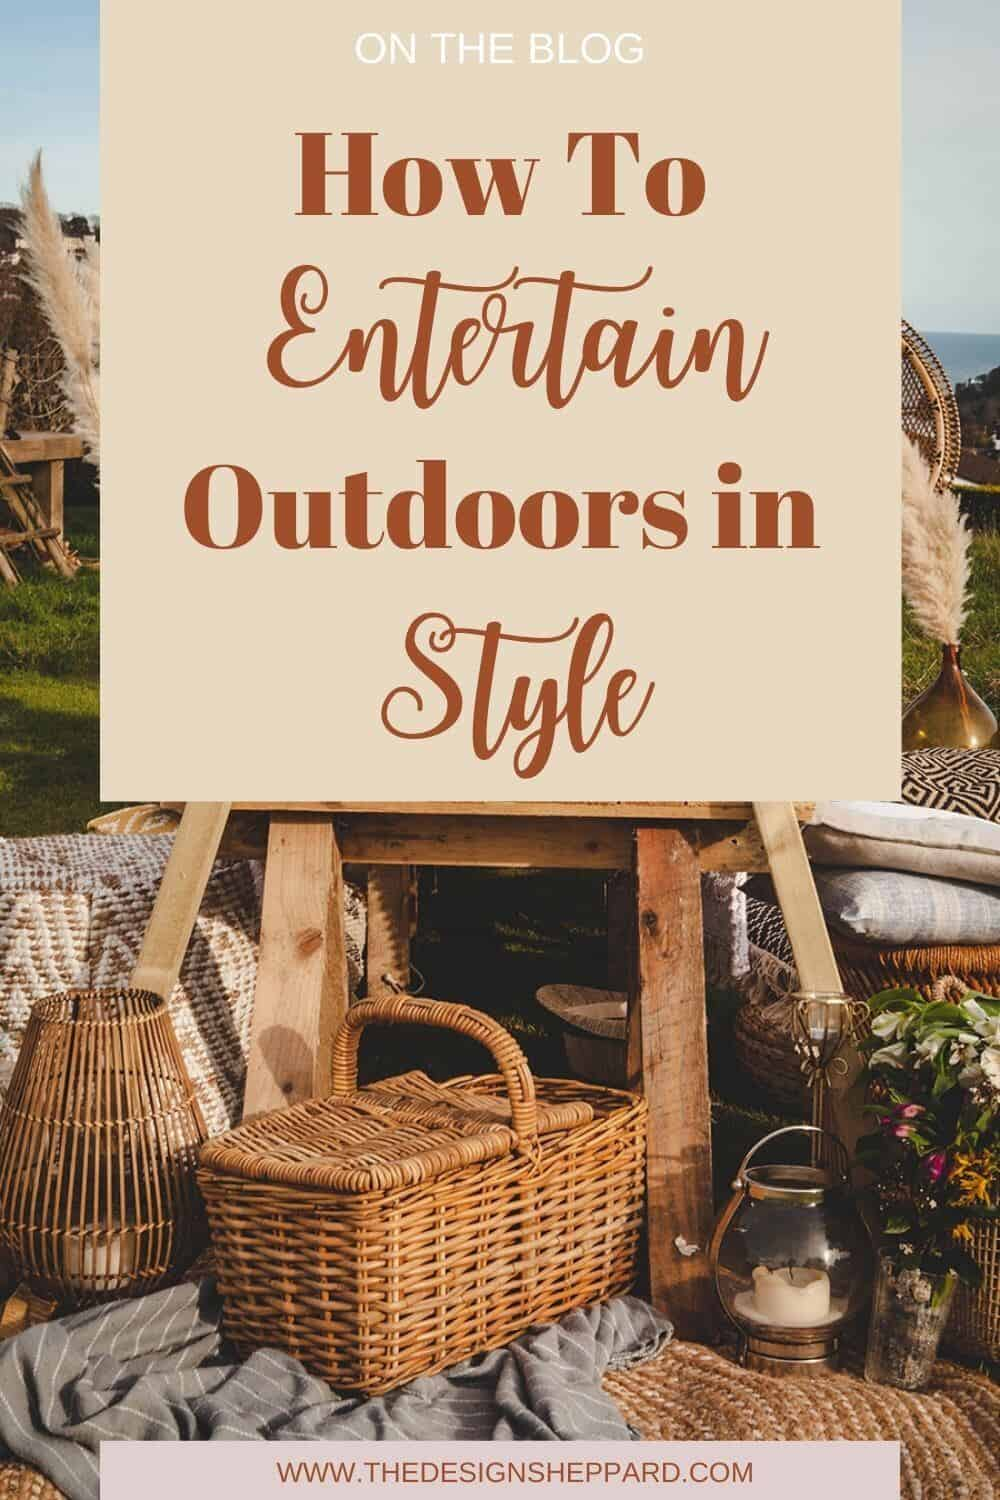 Entertain outdoors in style this summer